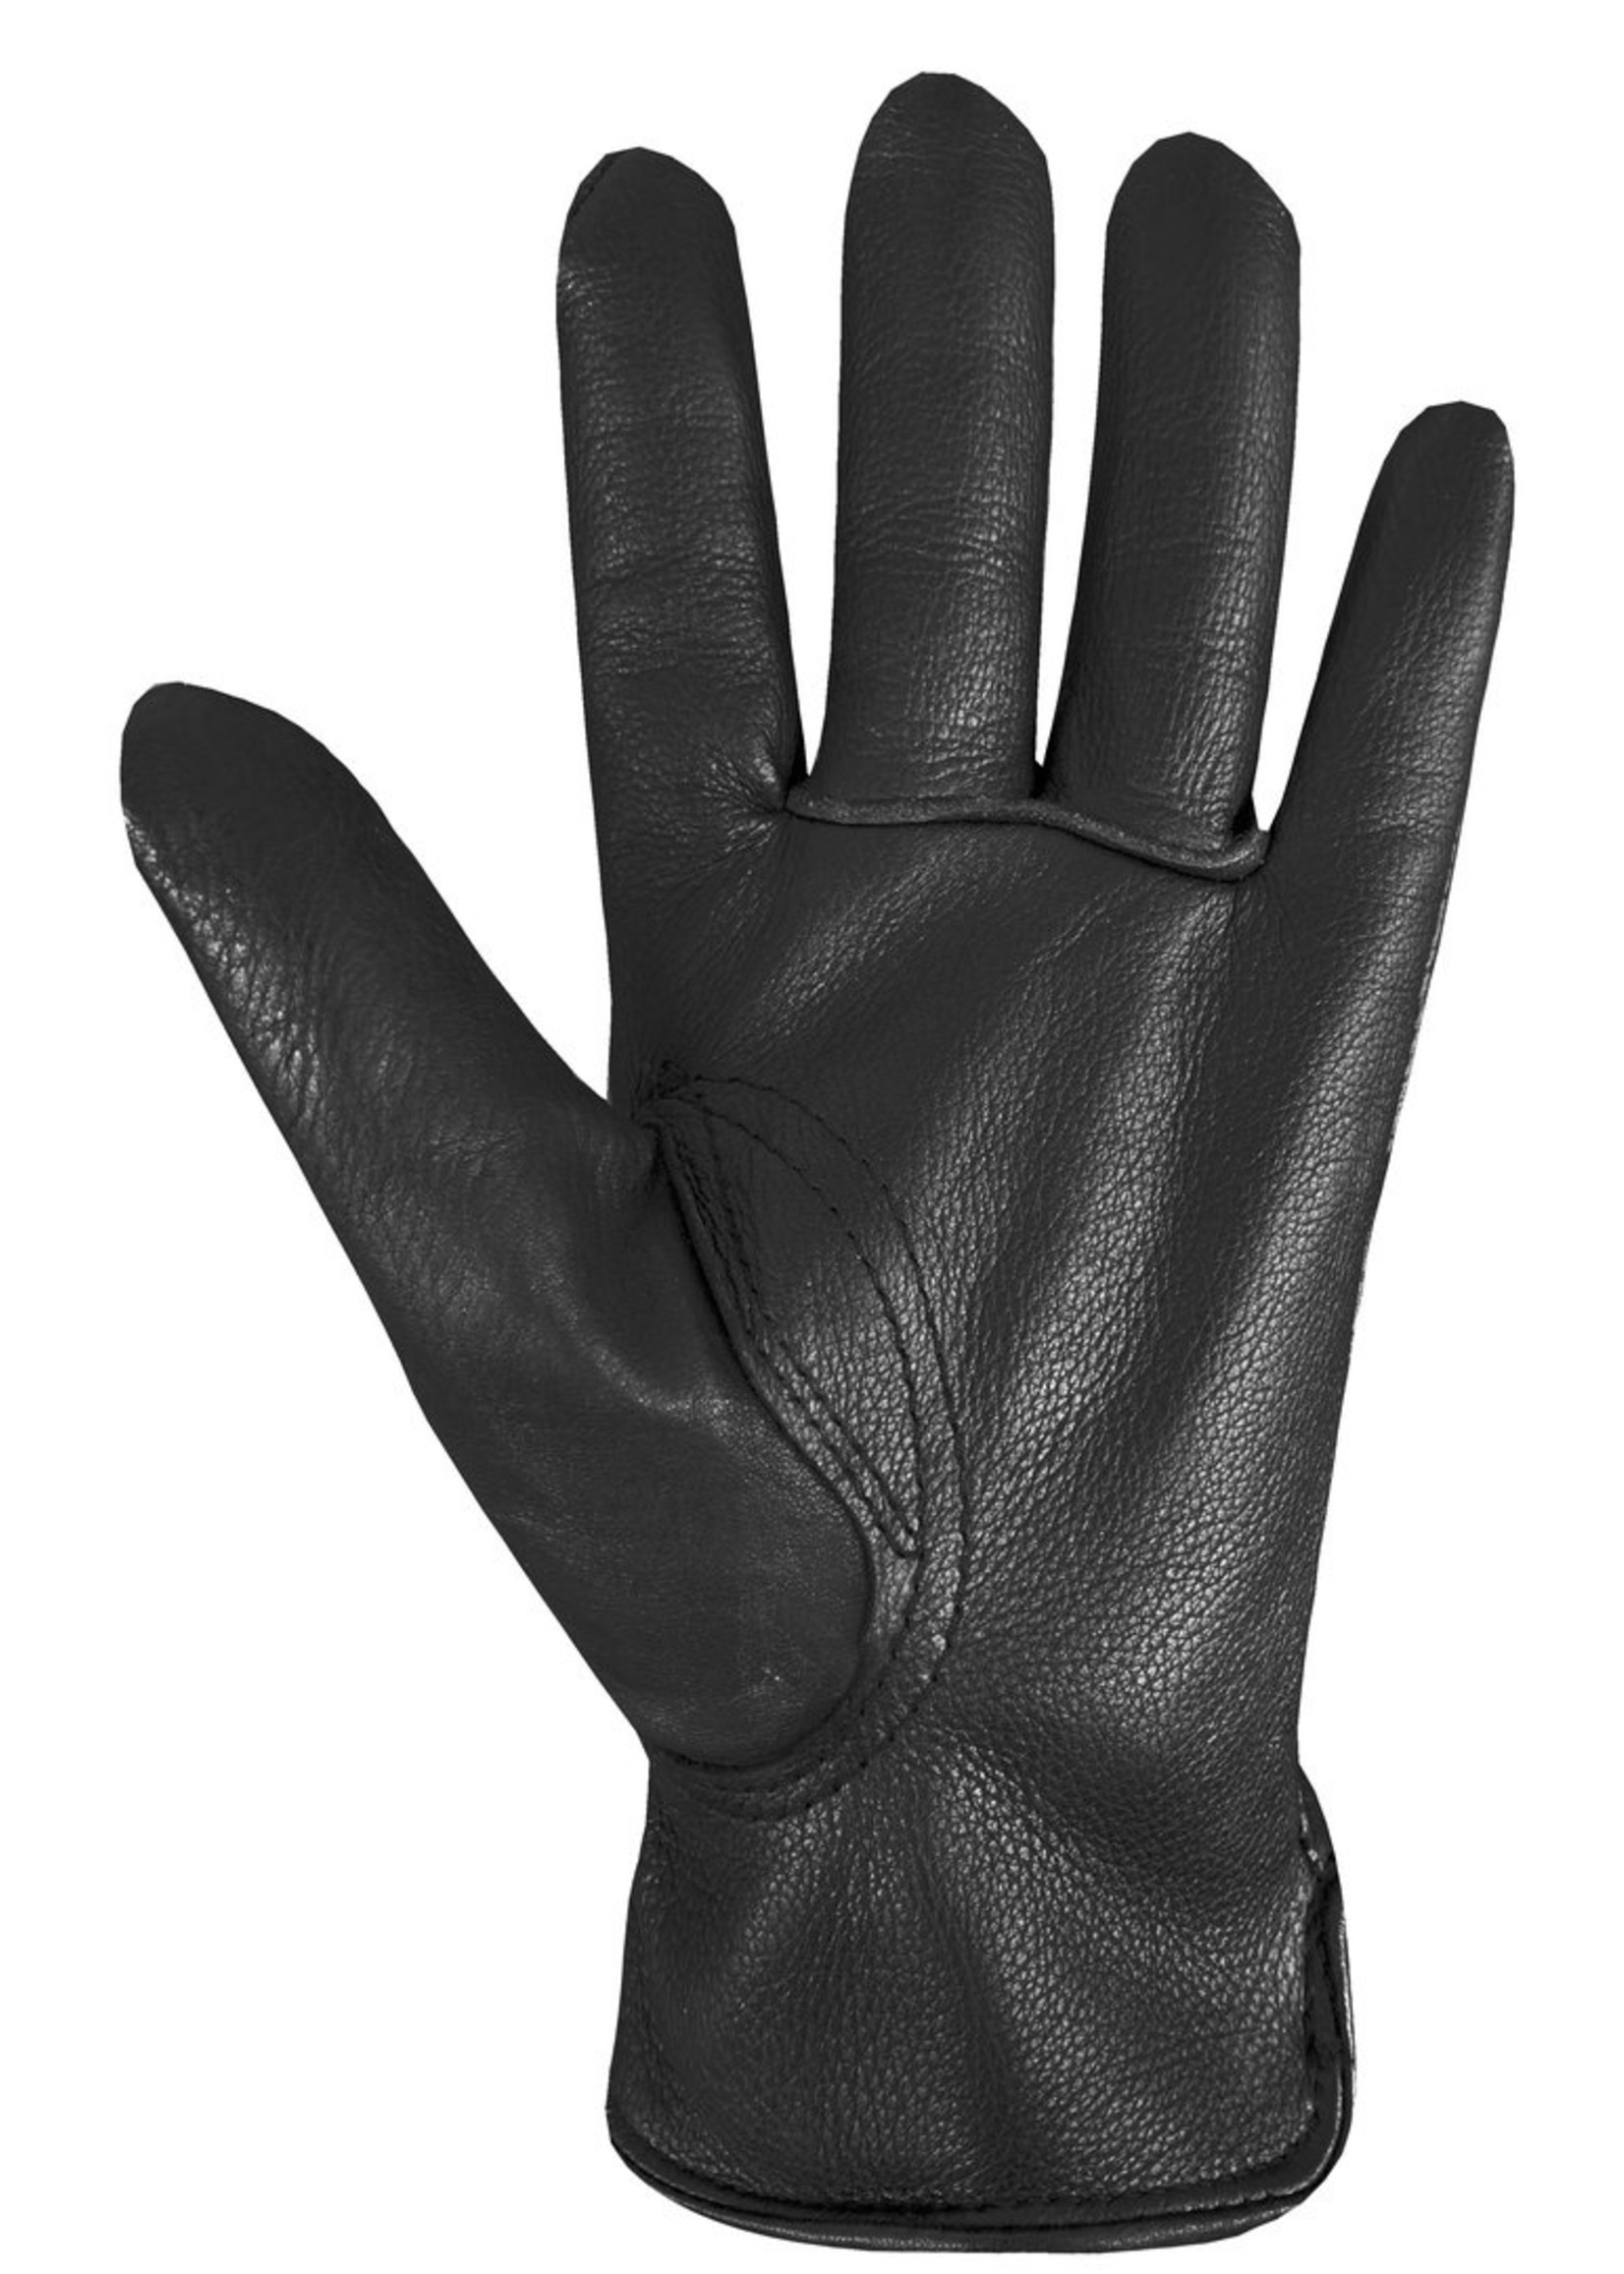 AUCLAIR DRIVERS STYLE LINED GLOVES 6B581